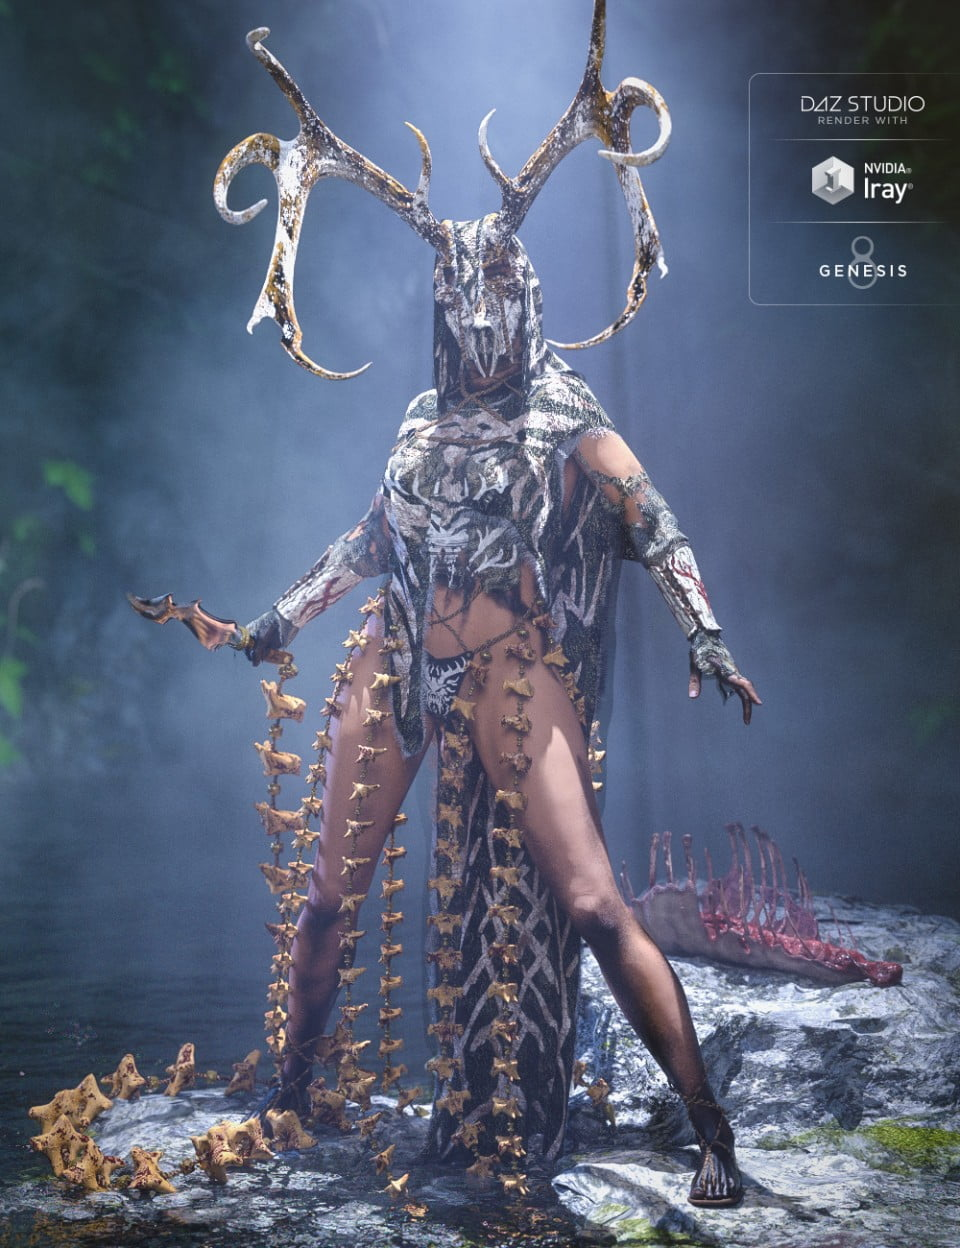 dforce Order of the Huntress: The Priestess